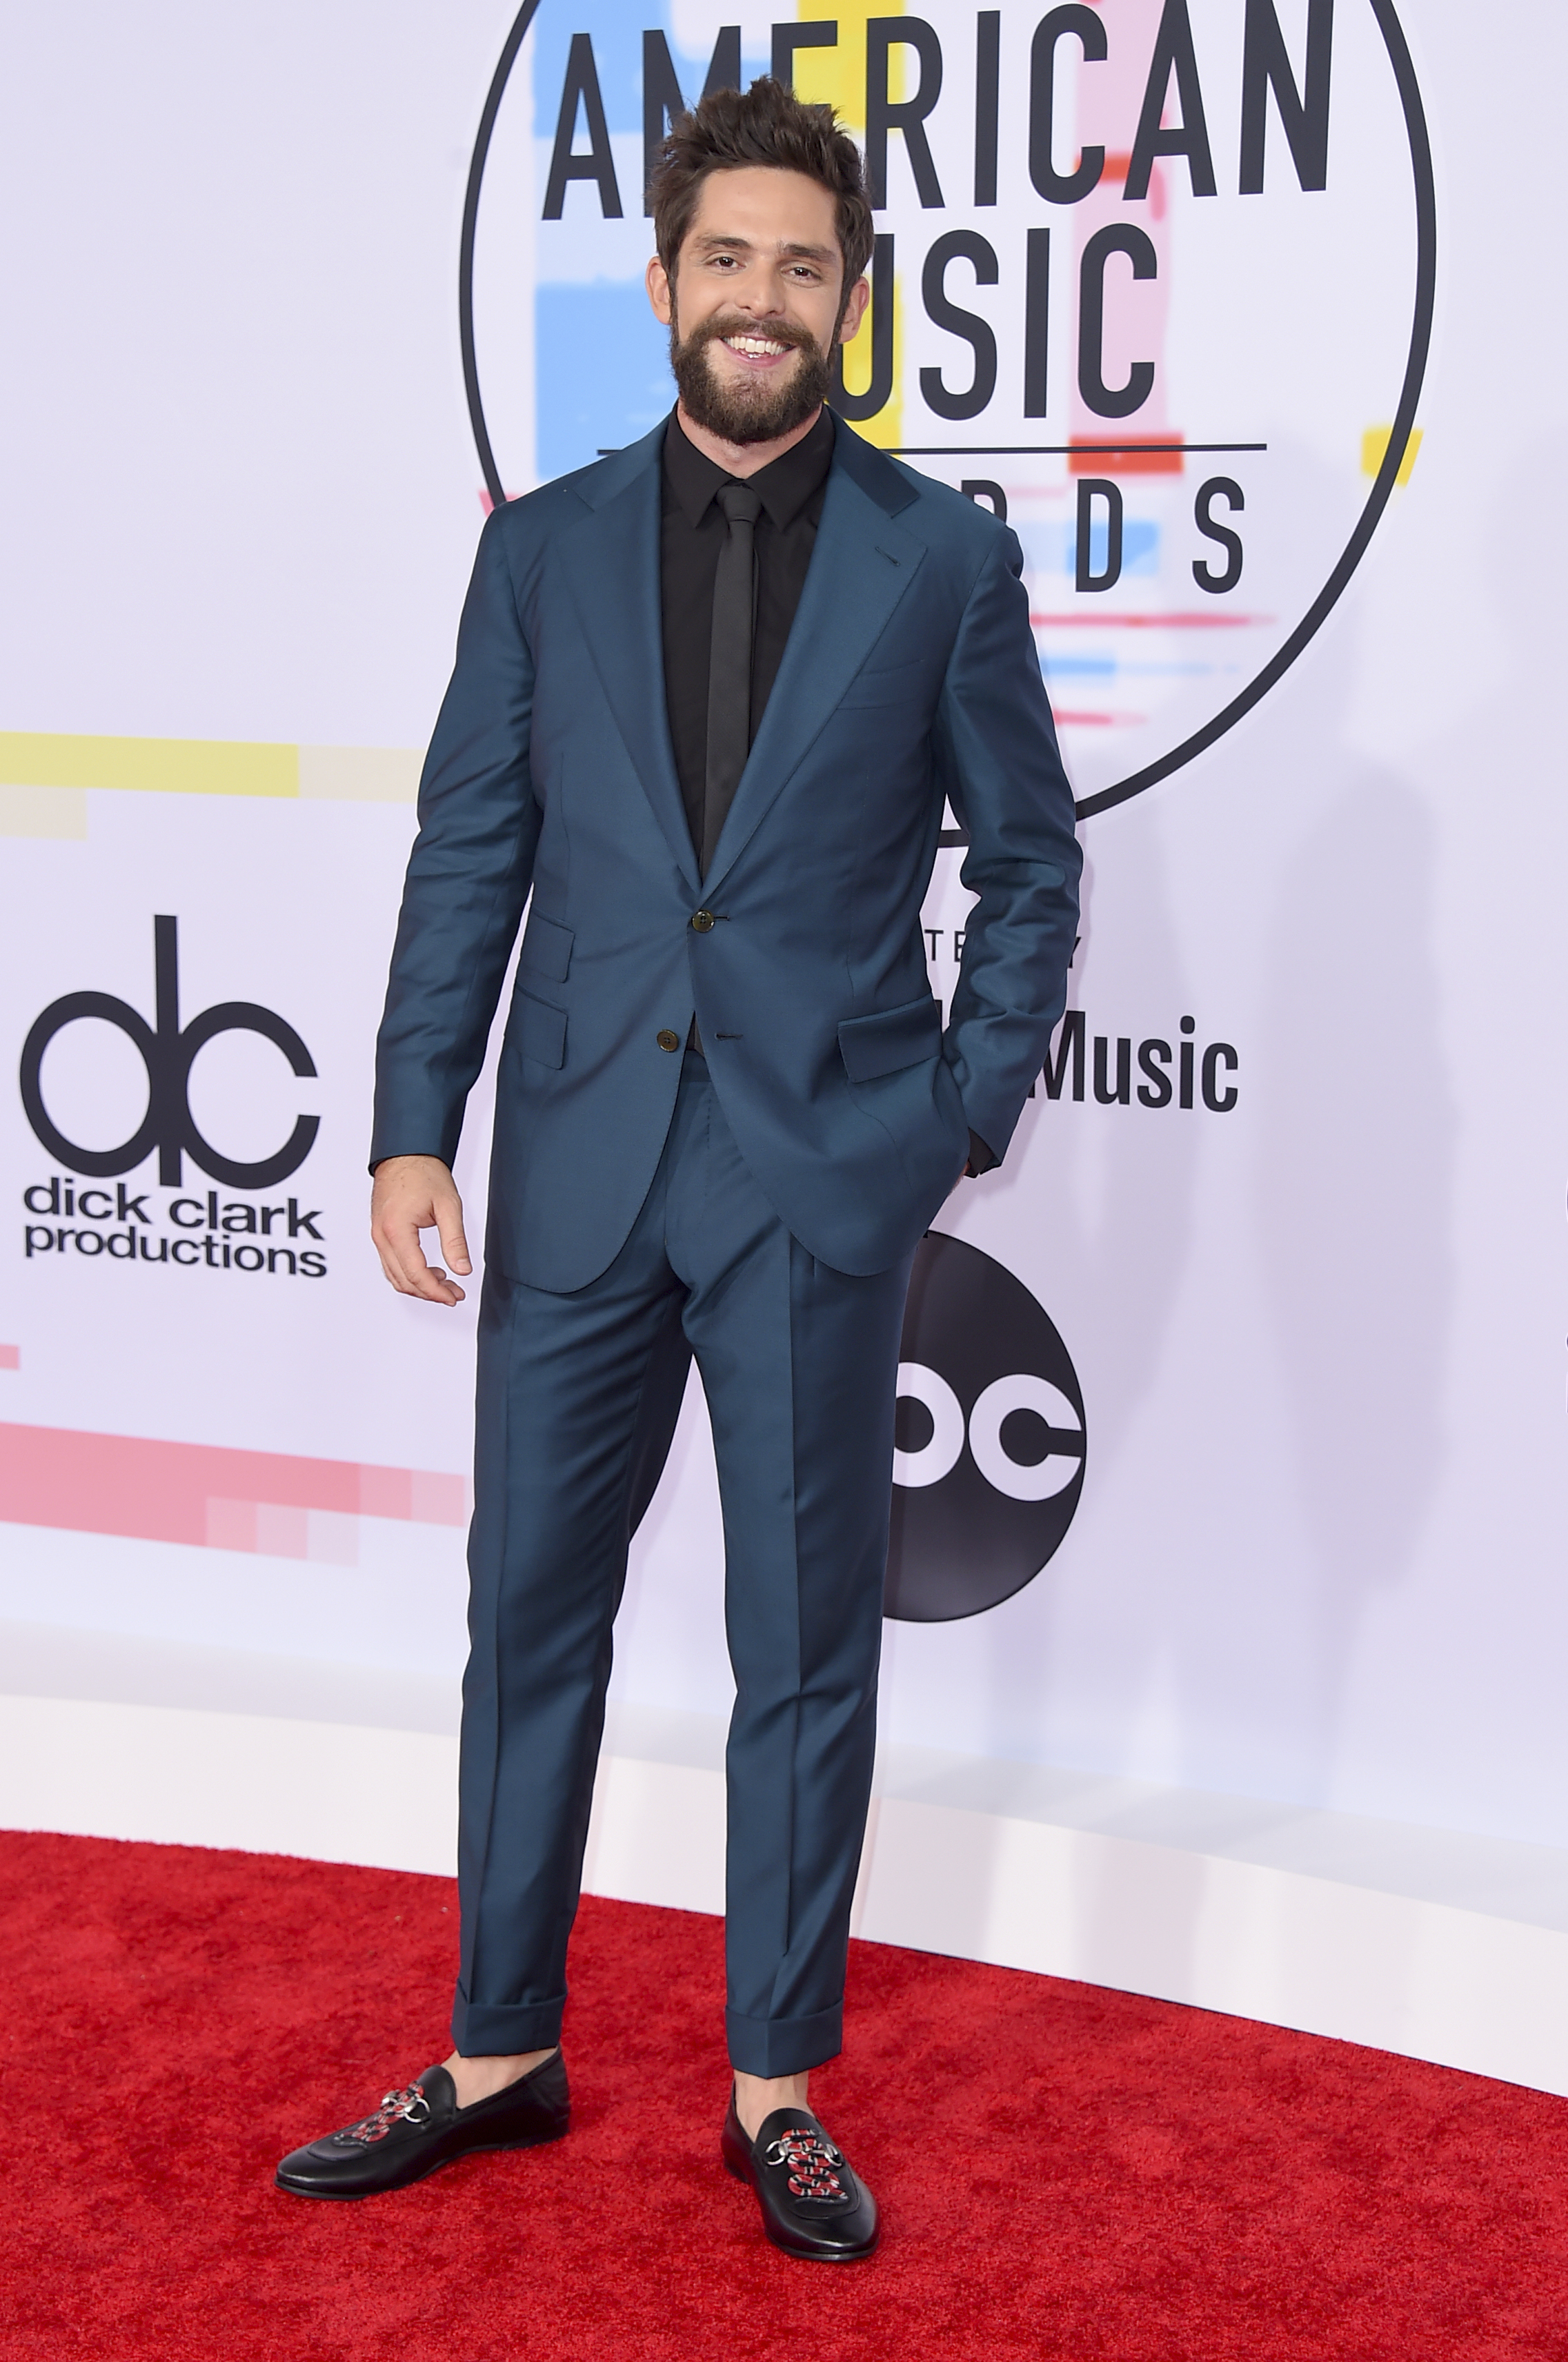 "<div class=""meta image-caption""><div class=""origin-logo origin-image none""><span>none</span></div><span class=""caption-text"">Thomas Rhett arrives at the American Music Awards on Tuesday, Oct. 9, 2018, at the Microsoft Theater in Los Angeles. (Jordan Strauss/Invision/AP)</span></div>"